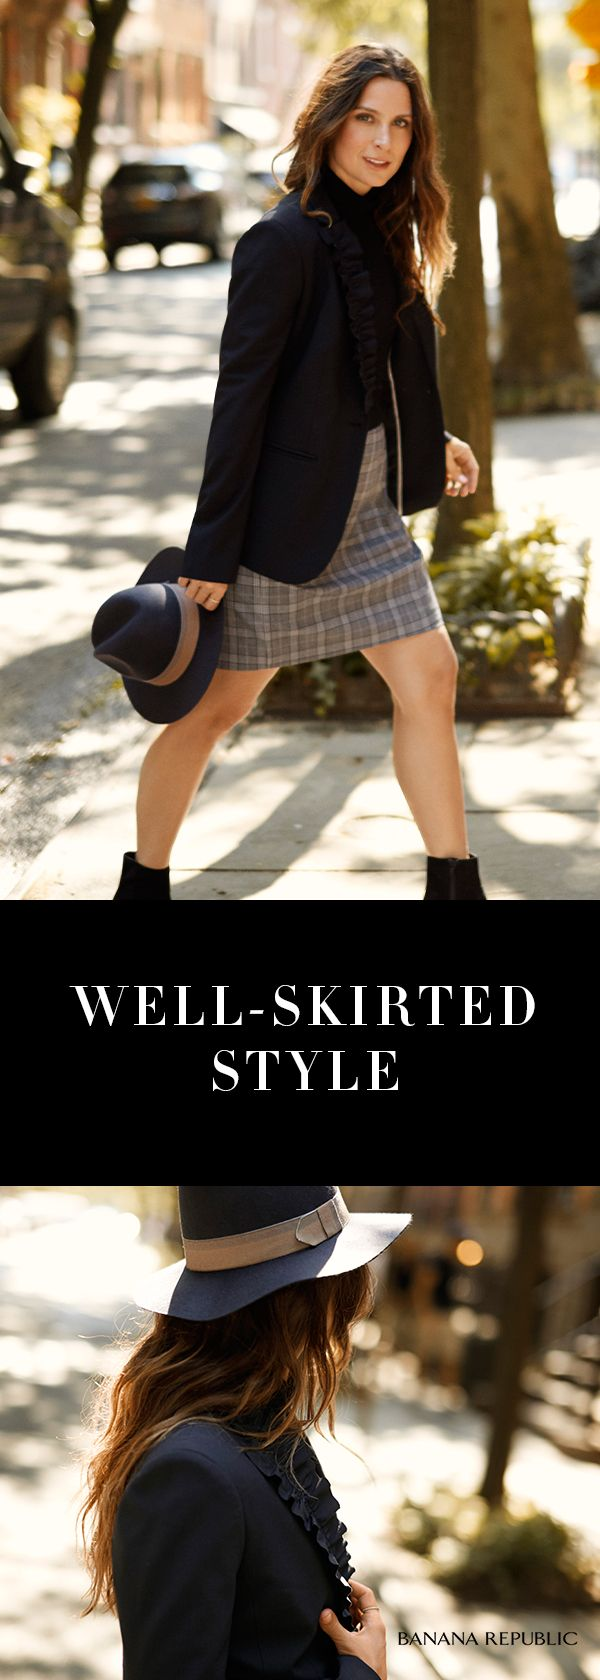 Start with a flirty plaid skirt then layer up with impeccable-quality blazers, polished blouses, even sweaters. Grab your hat and gorgeously go. From the board-room straight to a date. Skirts work.